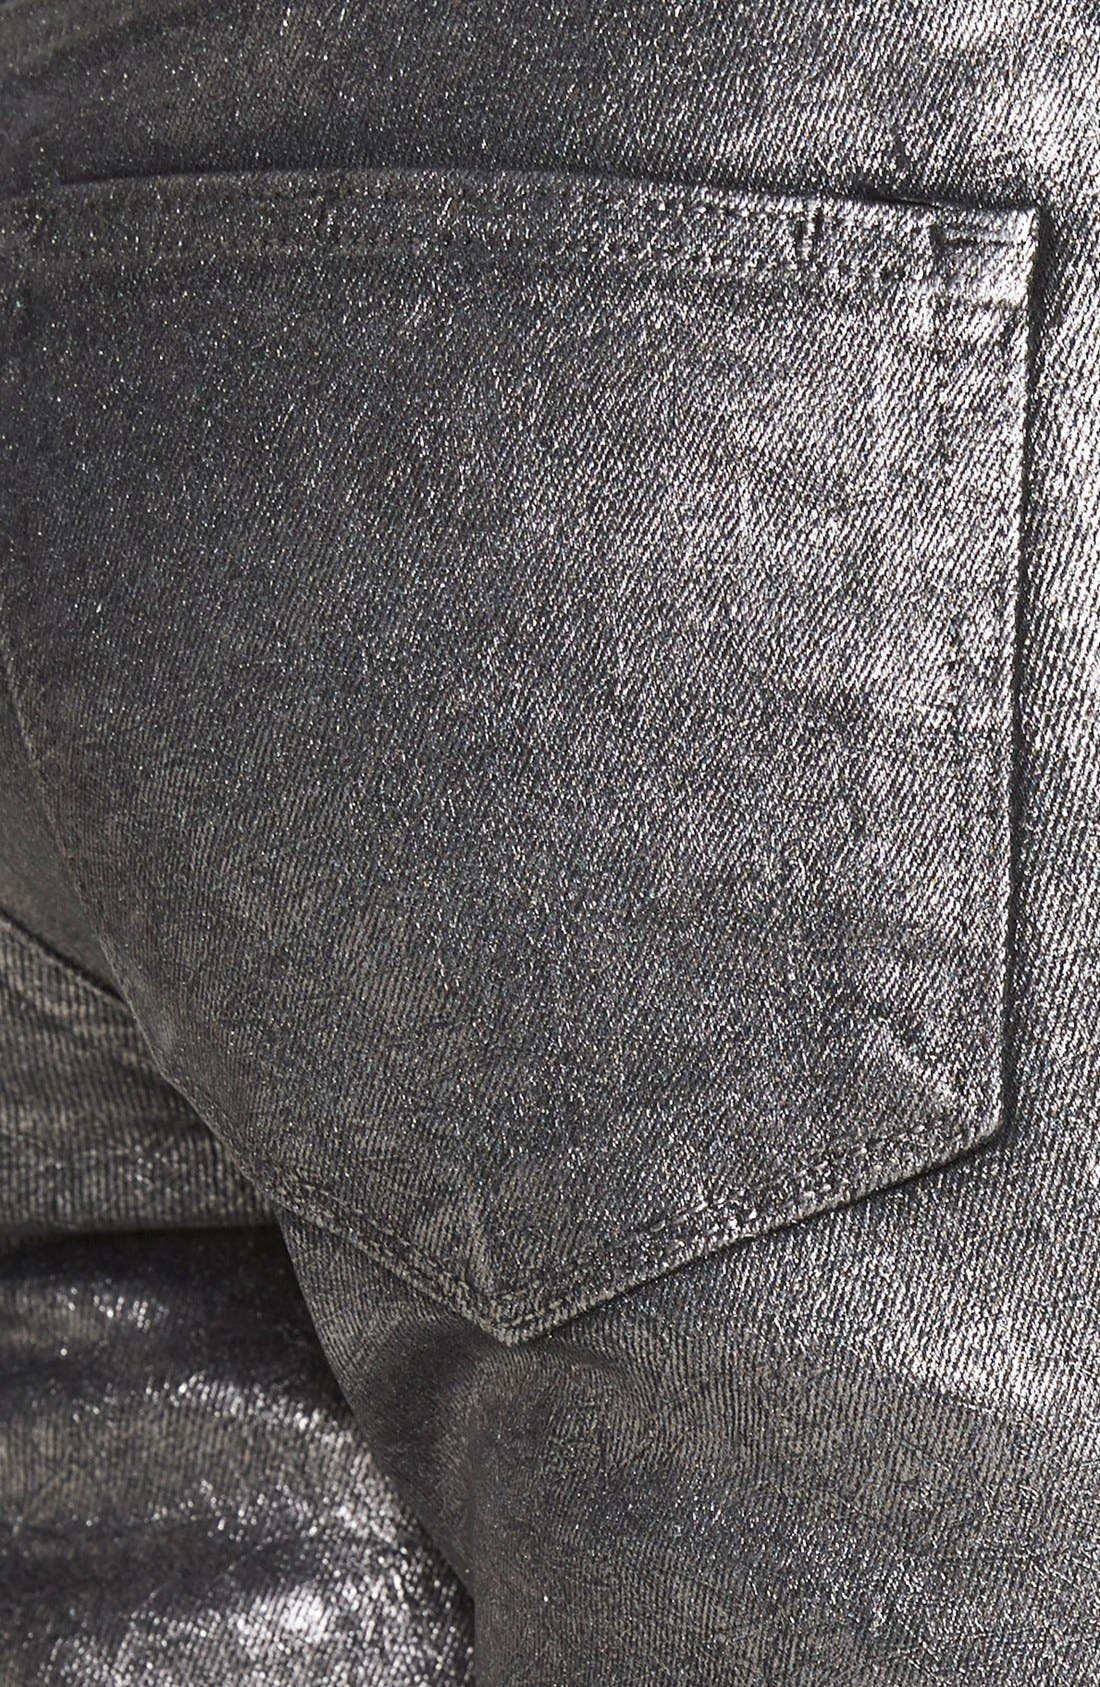 Alternate Image 3  - Paige Denim 'Verdugo' Ultra Skinny Jeans (Pewter Crackle)